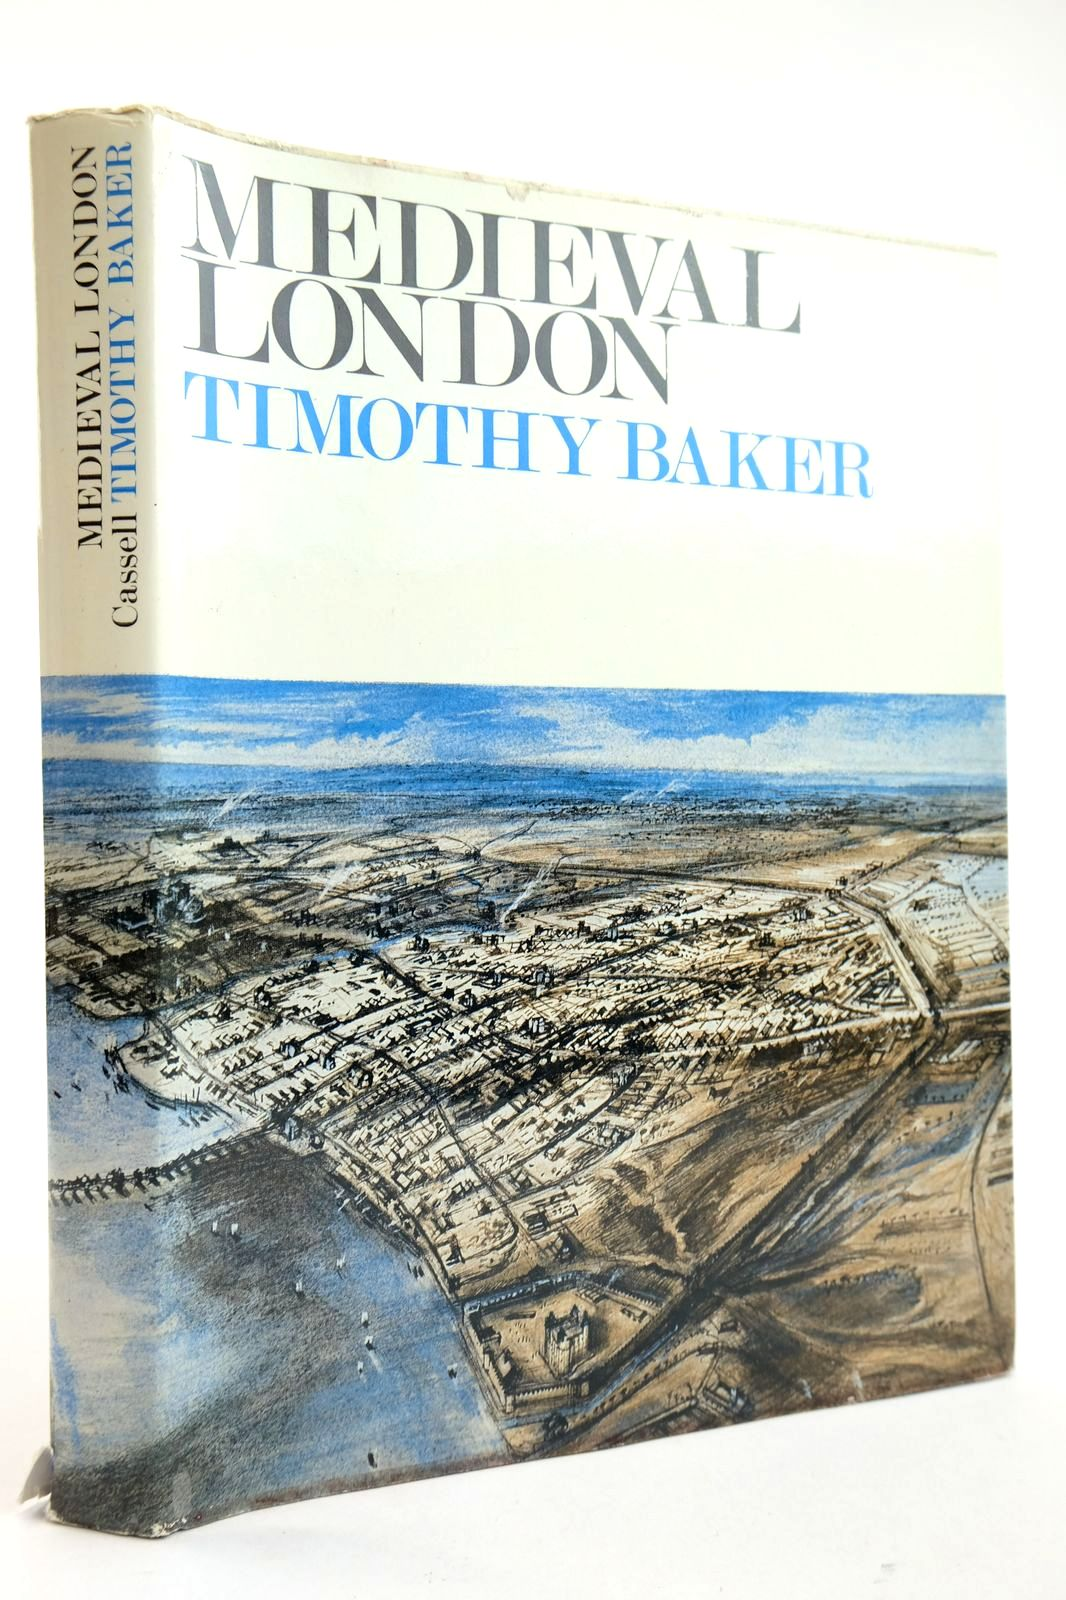 Photo of MEDIEVAL LONDON written by Baker, Timothy published by Cassell & Company Limited (STOCK CODE: 2132597)  for sale by Stella & Rose's Books